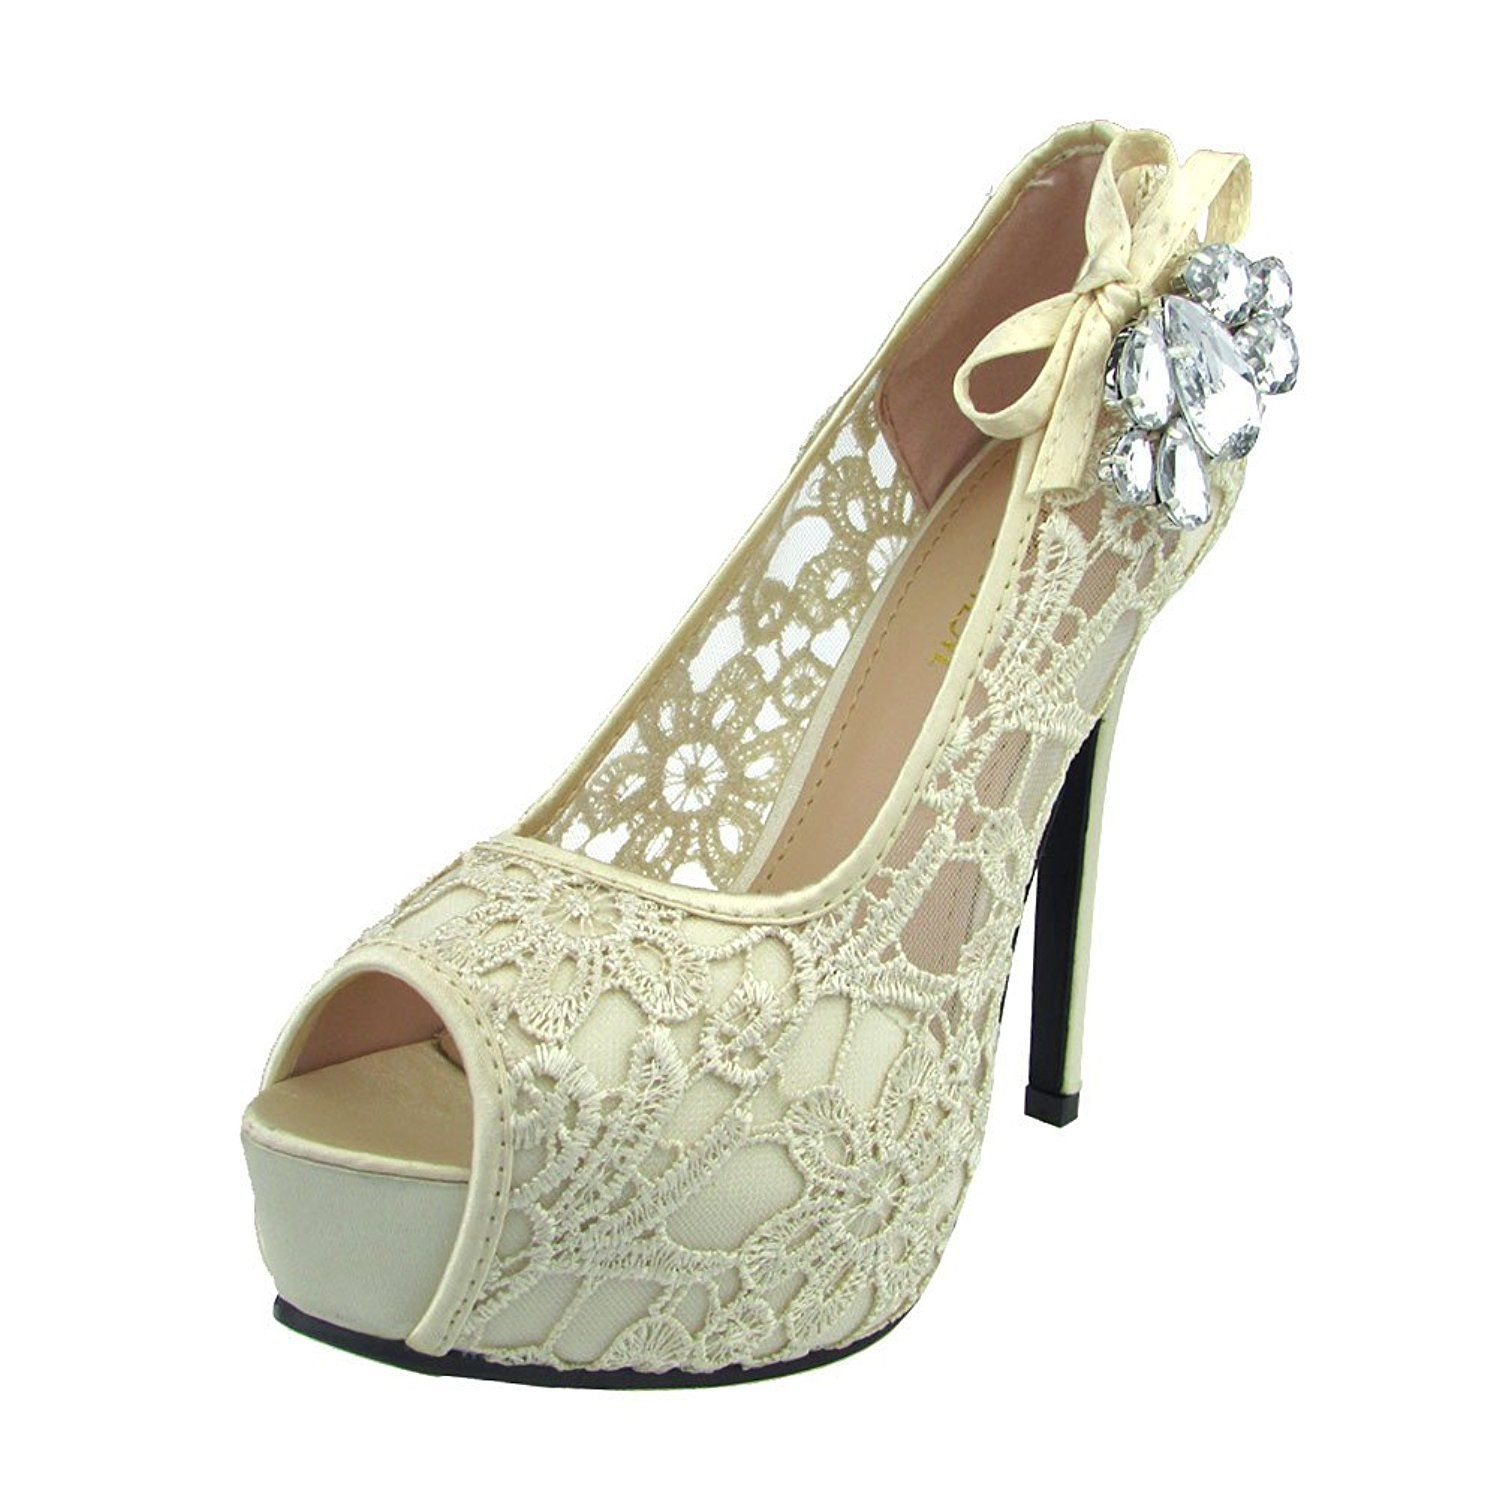 50ccff61f274 Donalworld Women Lace Up Crystal Sandals High Heel Wedding Sandals     Details can be found by clicking on the image. This Amazon pins is an  affiliate link ...